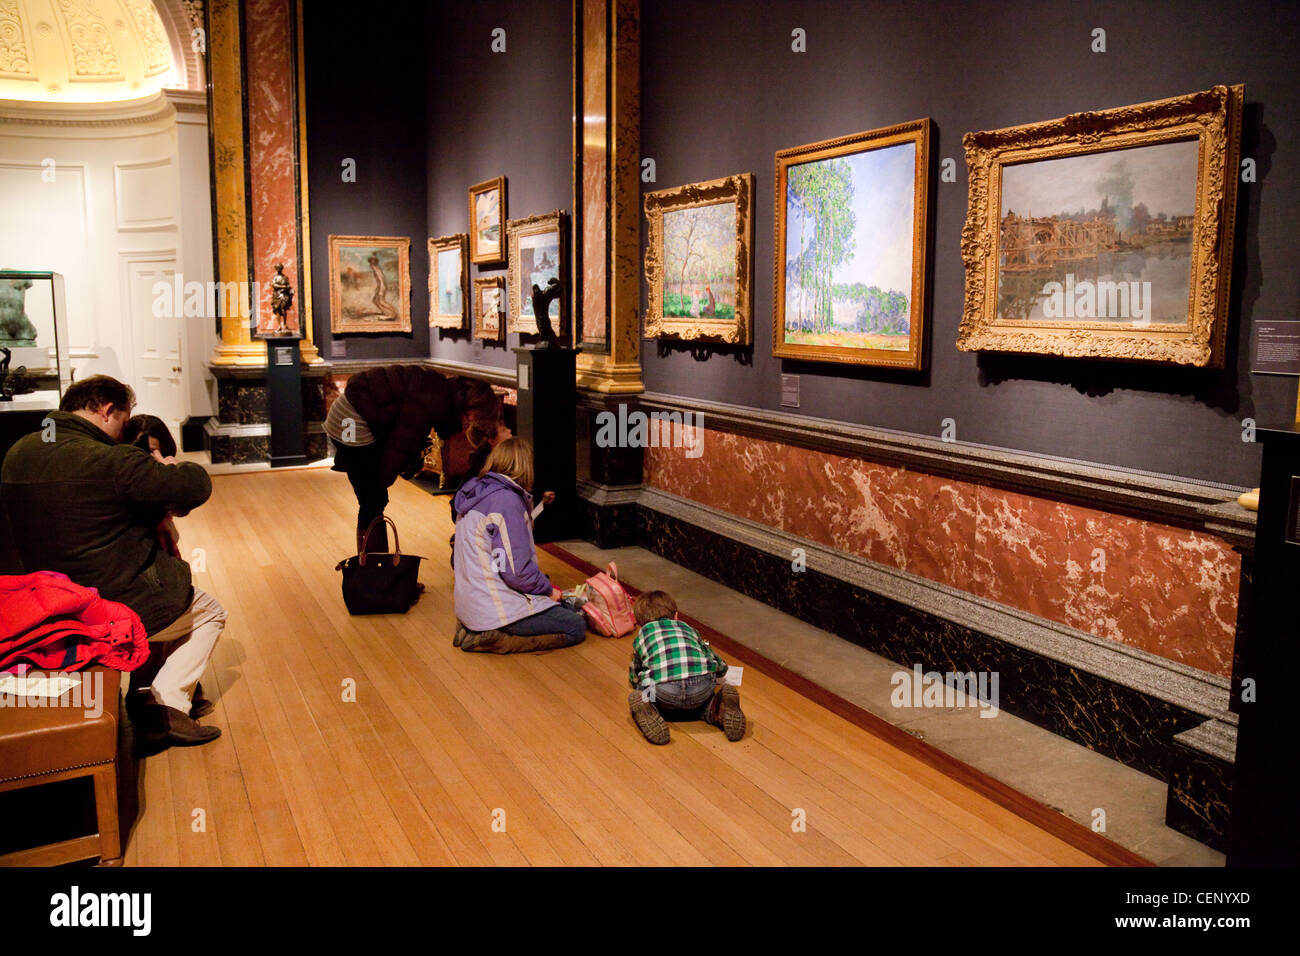 Families  in one of the art galleries of the Fitzwilliam Museum, cambridge UK - Stock Image